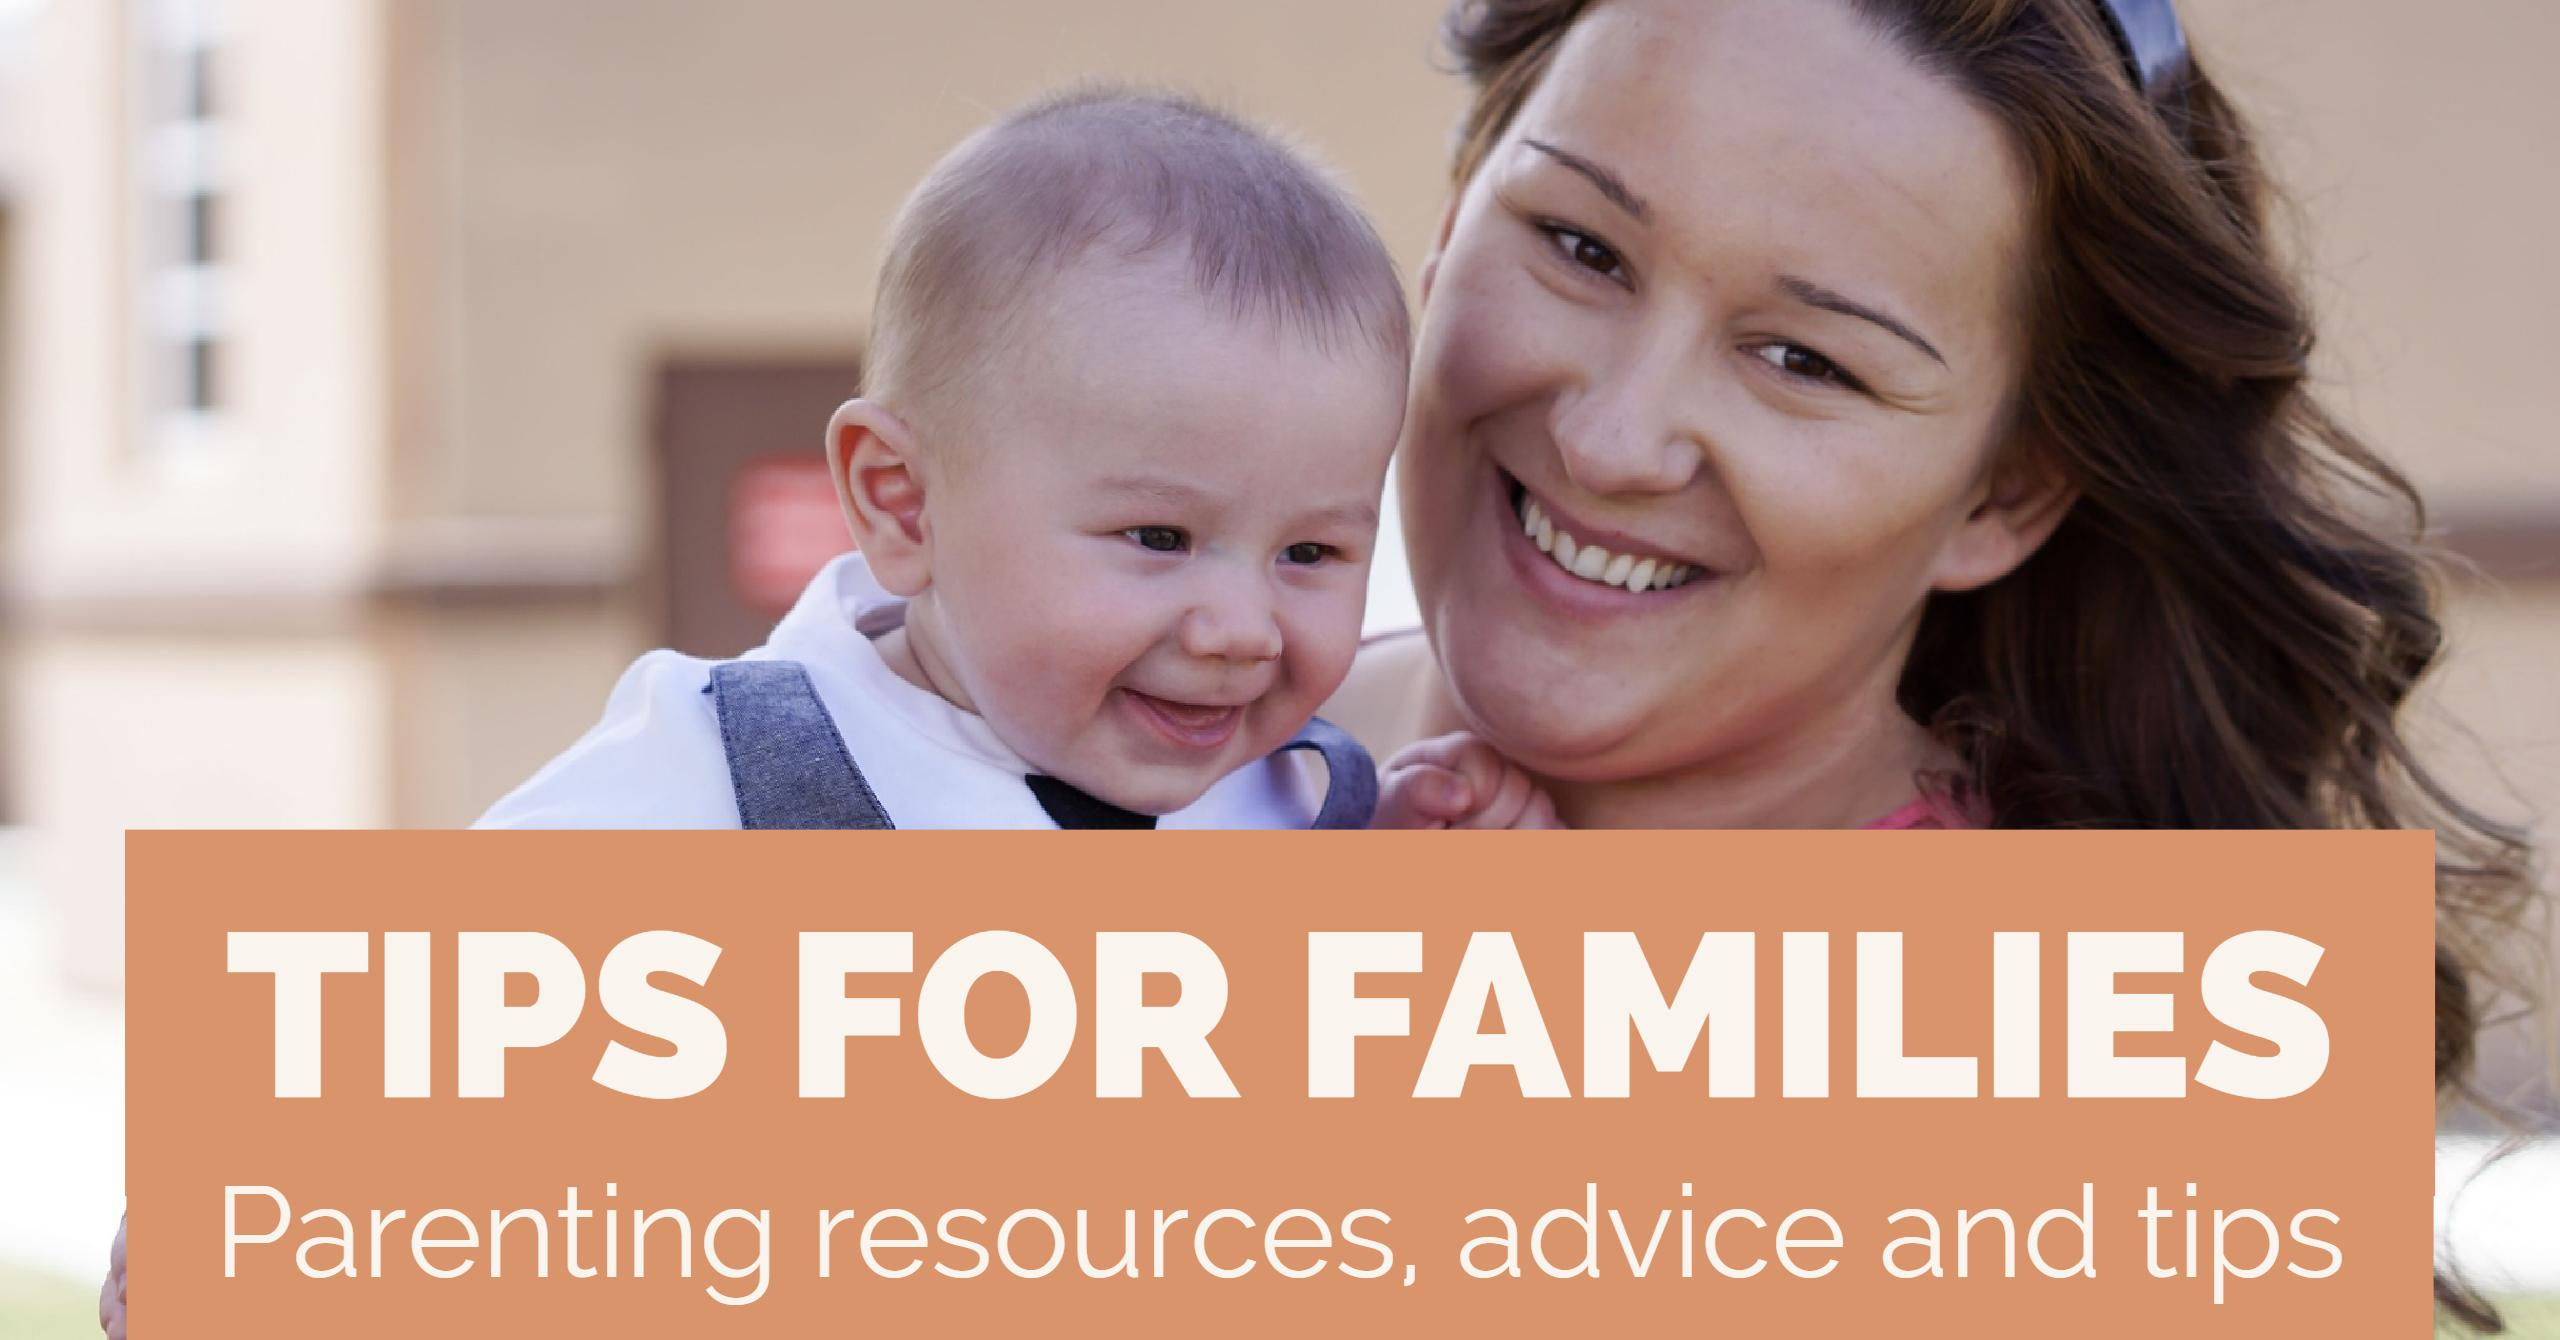 Tips For Families